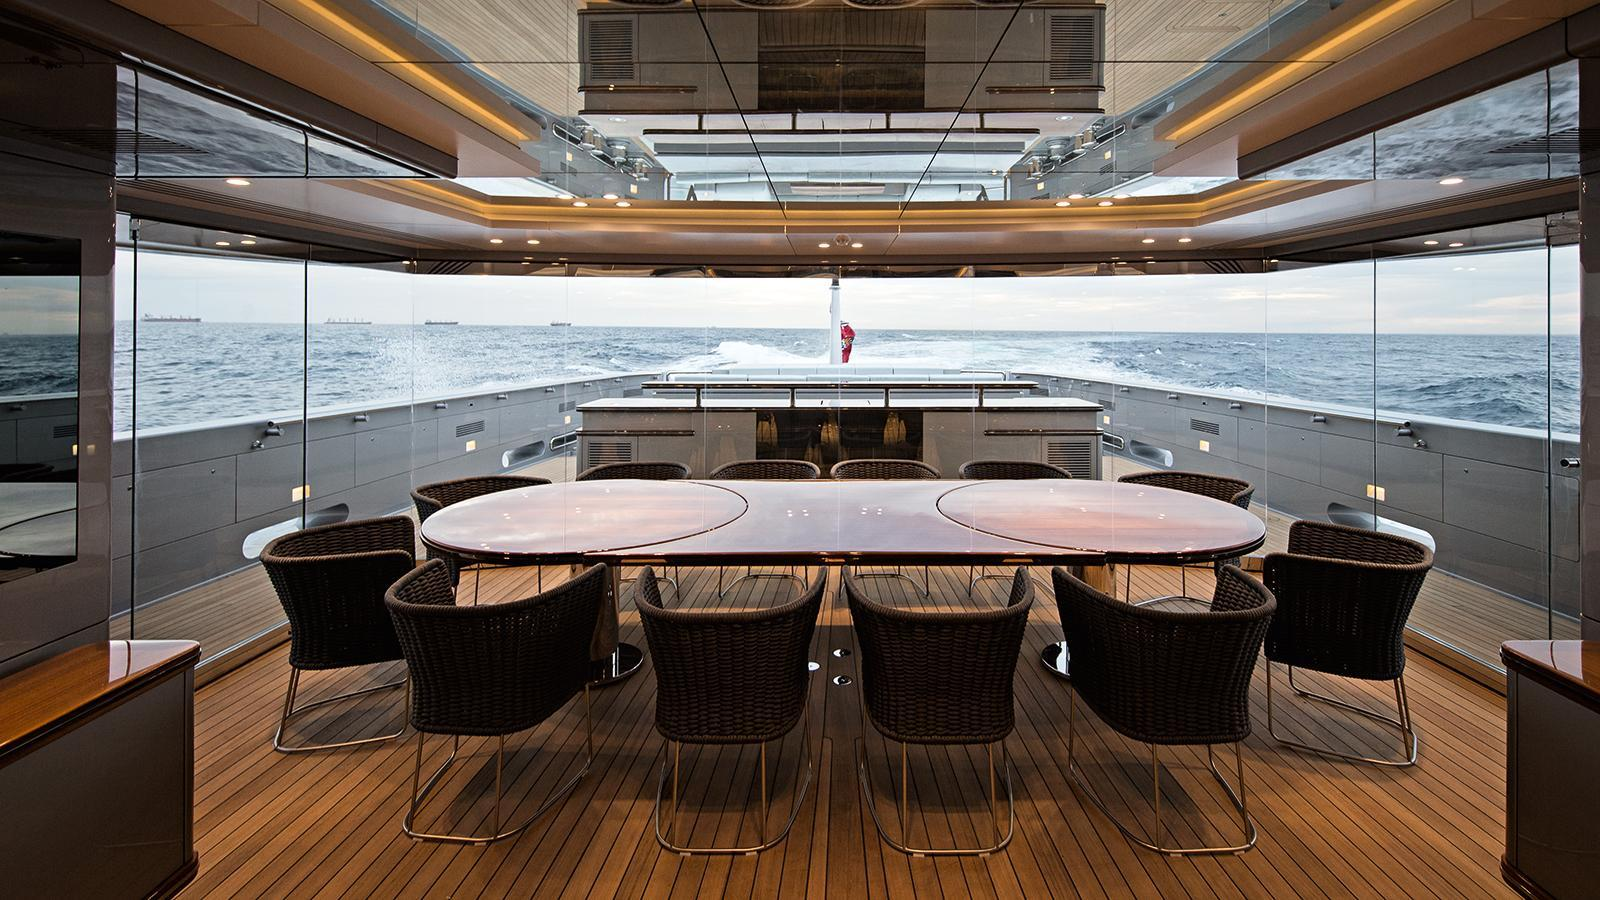 silver-fast-motor-yacht-2015-77m-covered-deck-dining